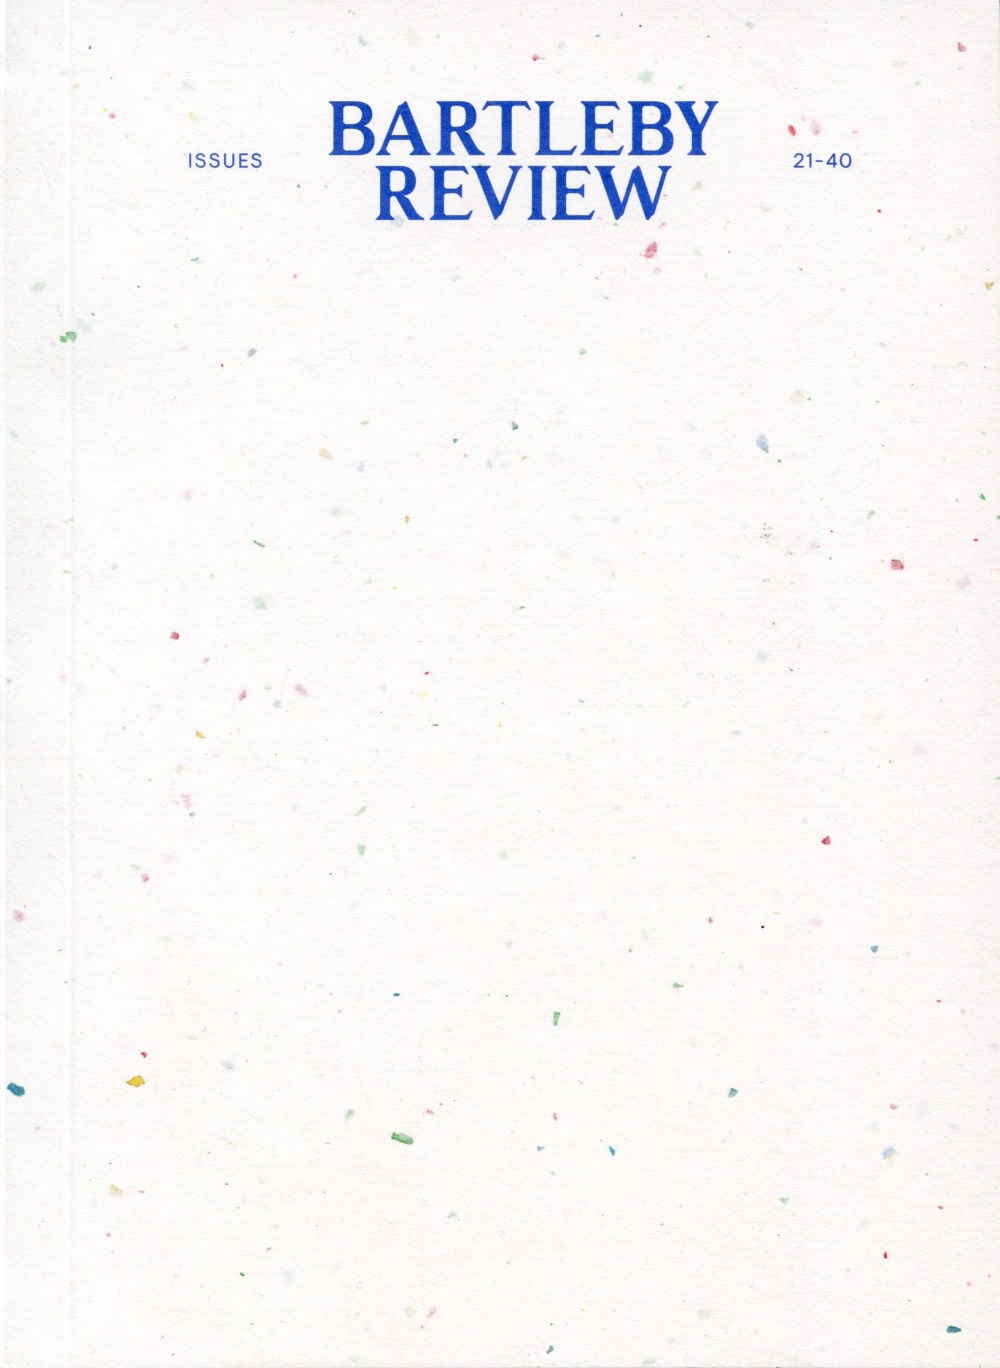 BARTLEBY REVIEW: 21-40